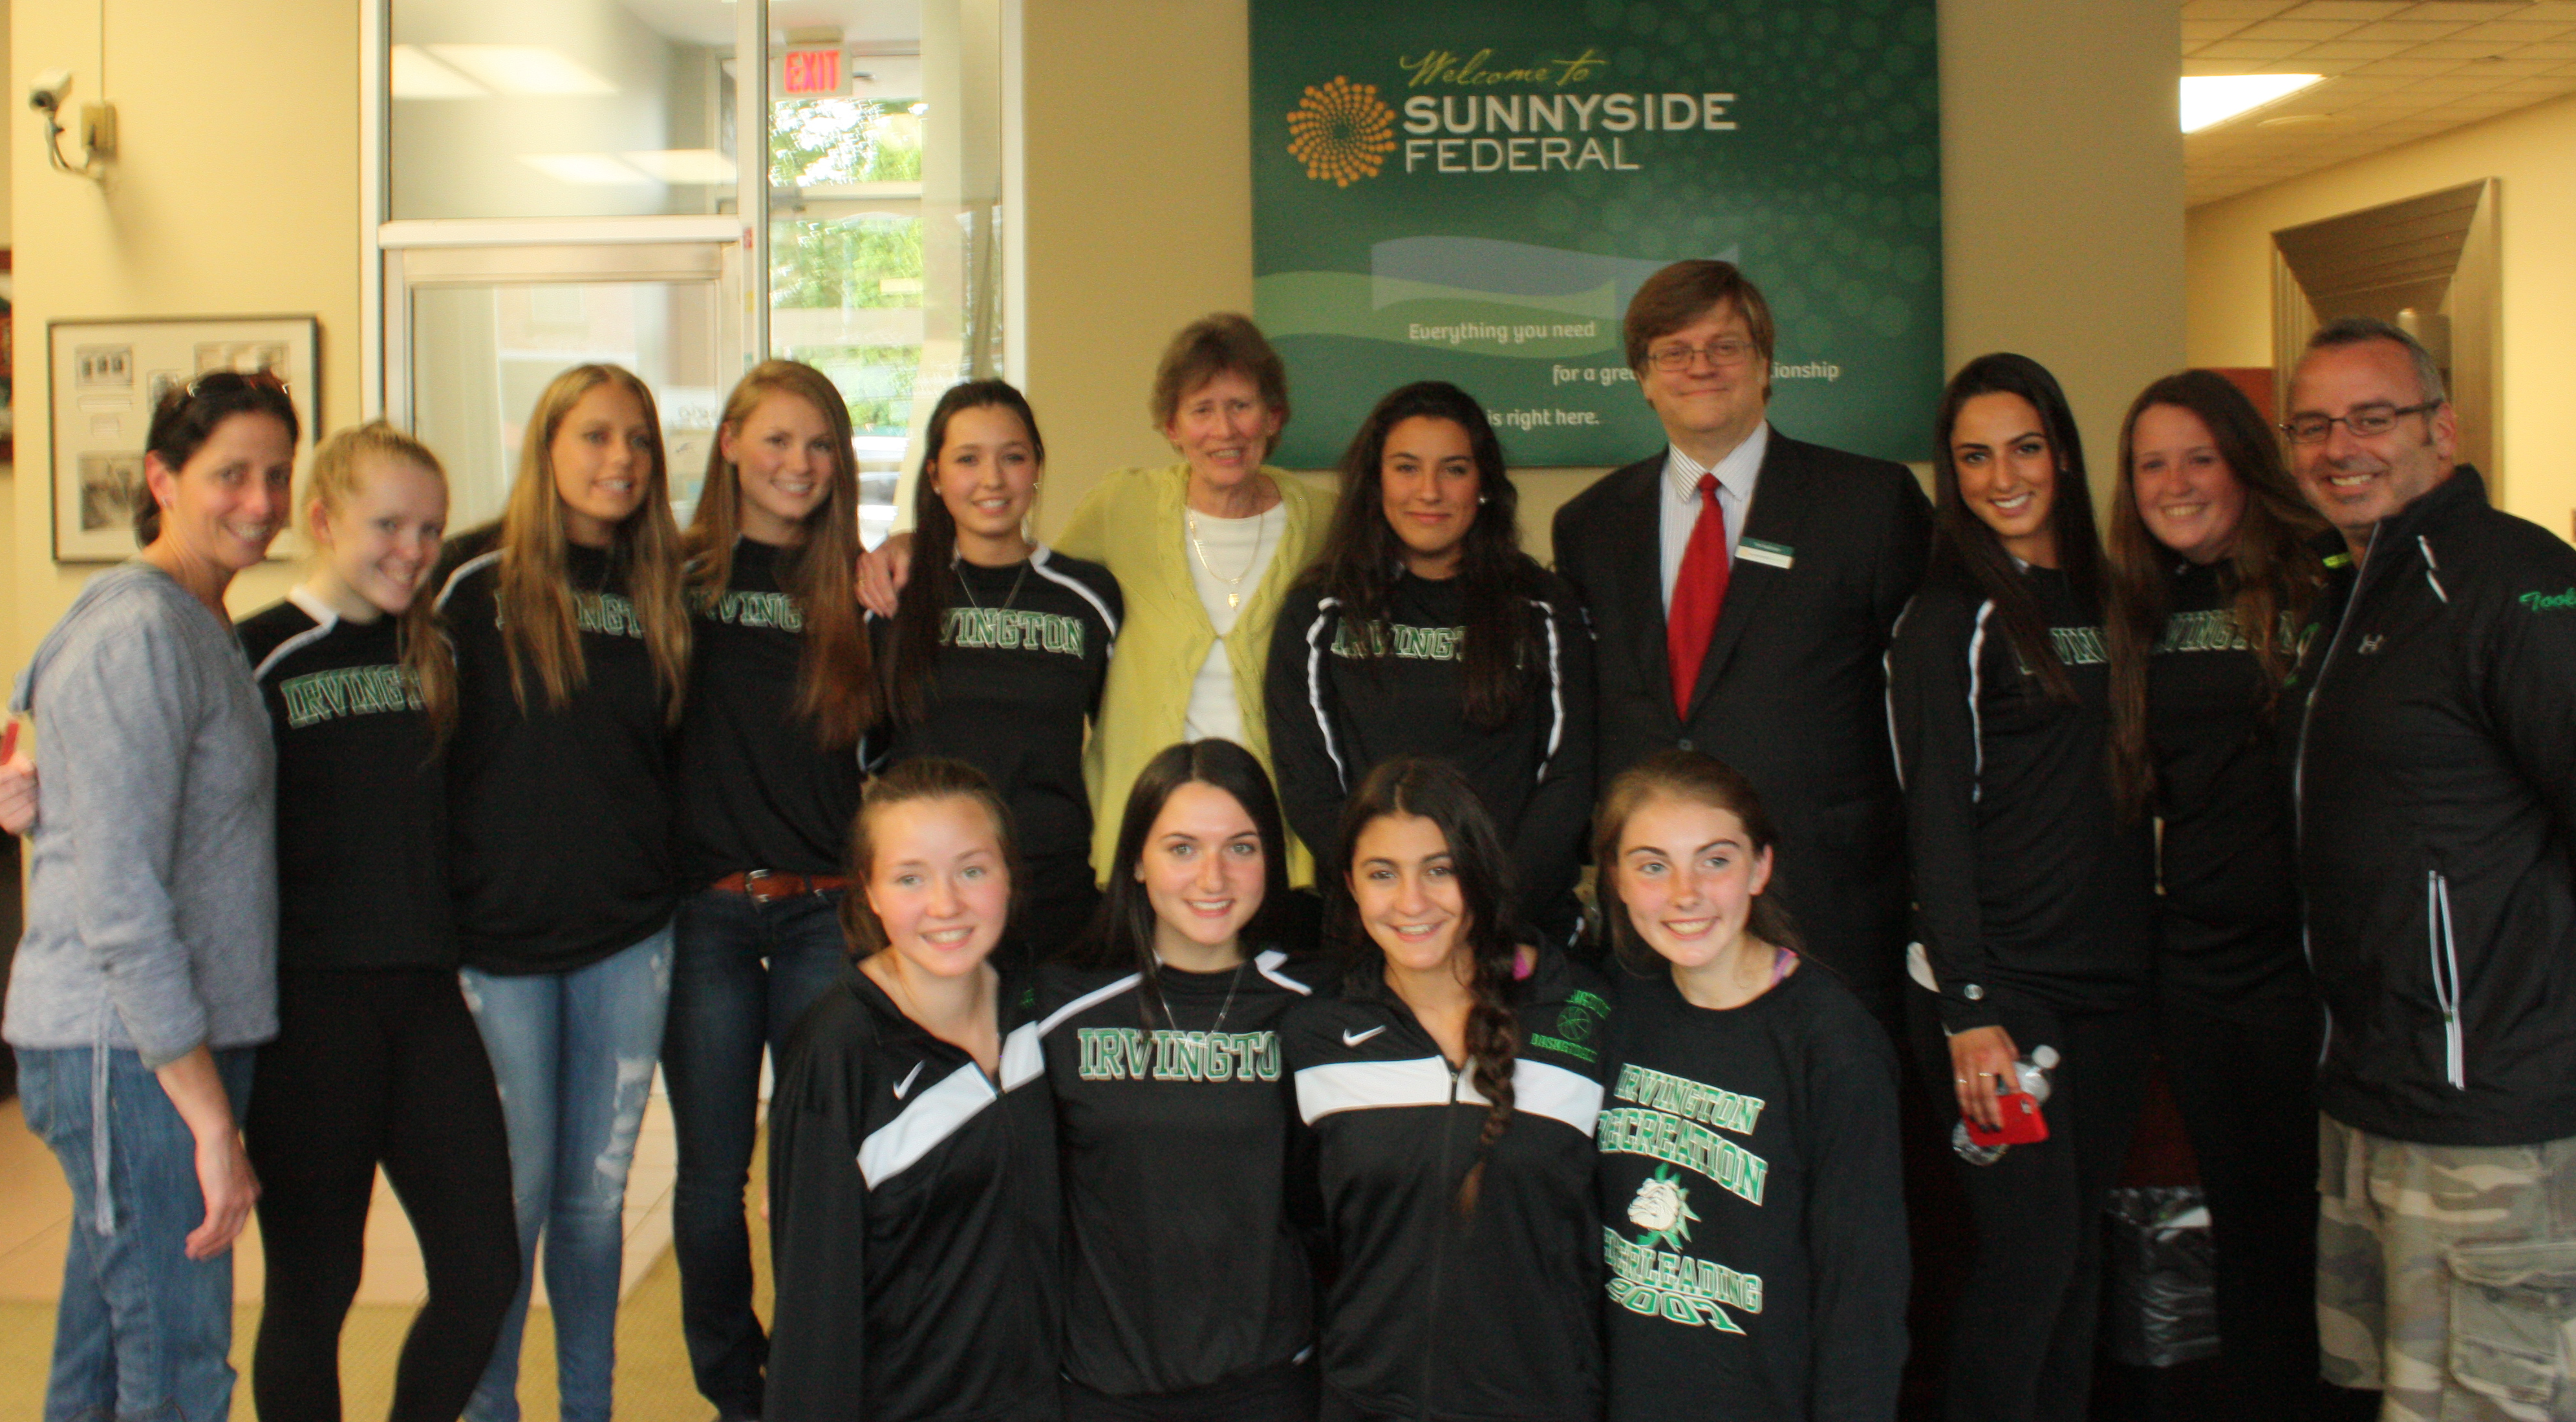 ach, received the inaugural Sunnyside Federal Person of the Year Award from Tim Sullivan, the bank's President and CEO with an enthusiastic crowd in attendance along with members of the Irvington High Lady Bulldog basketball team and assistant coaches, Barbara Constantine and Michael Toolan. Sunnyside Federal also made a contribution in Gina Maher's honor related to autism awareness/education. The Autism Classic basketball tournament is hosted by Gina Maher.